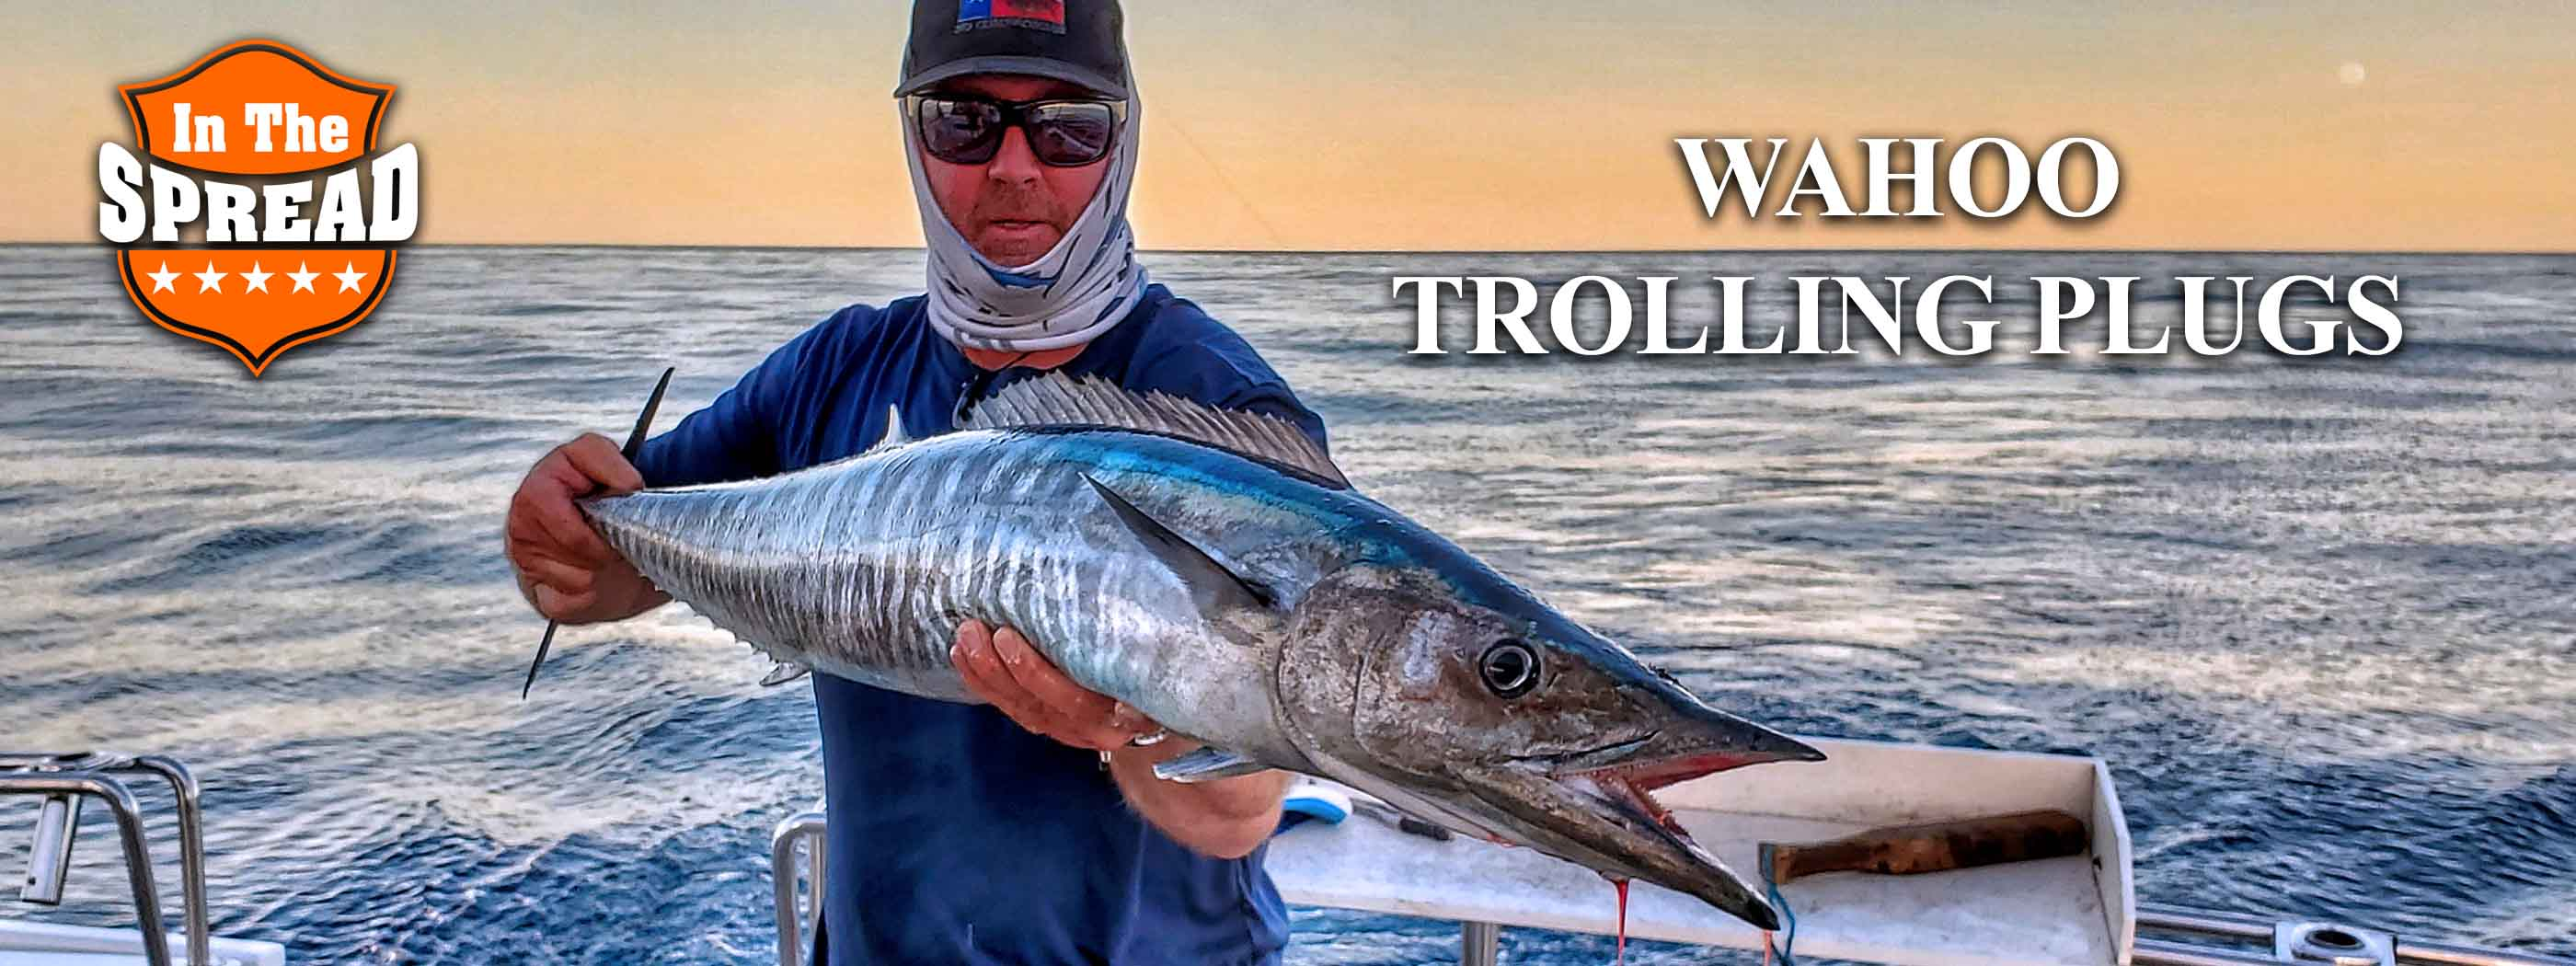 wahoo fishing videos in the spread